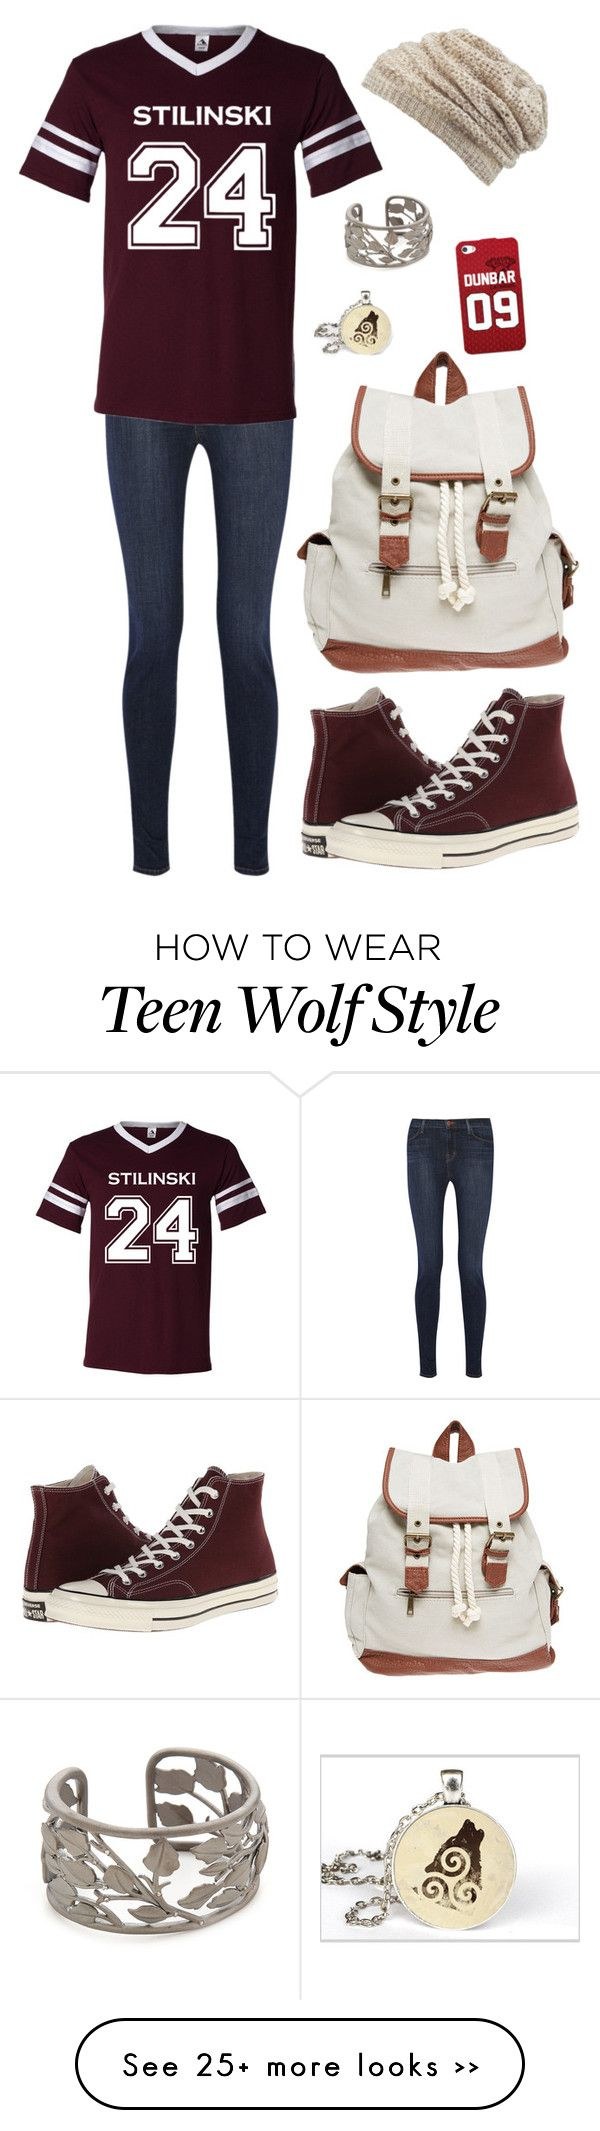 """Untitled 416"" by leo-s-fire on Polyvore featuring J Brand, Converse, Wet Seal, Jamie Wolf and maurices"